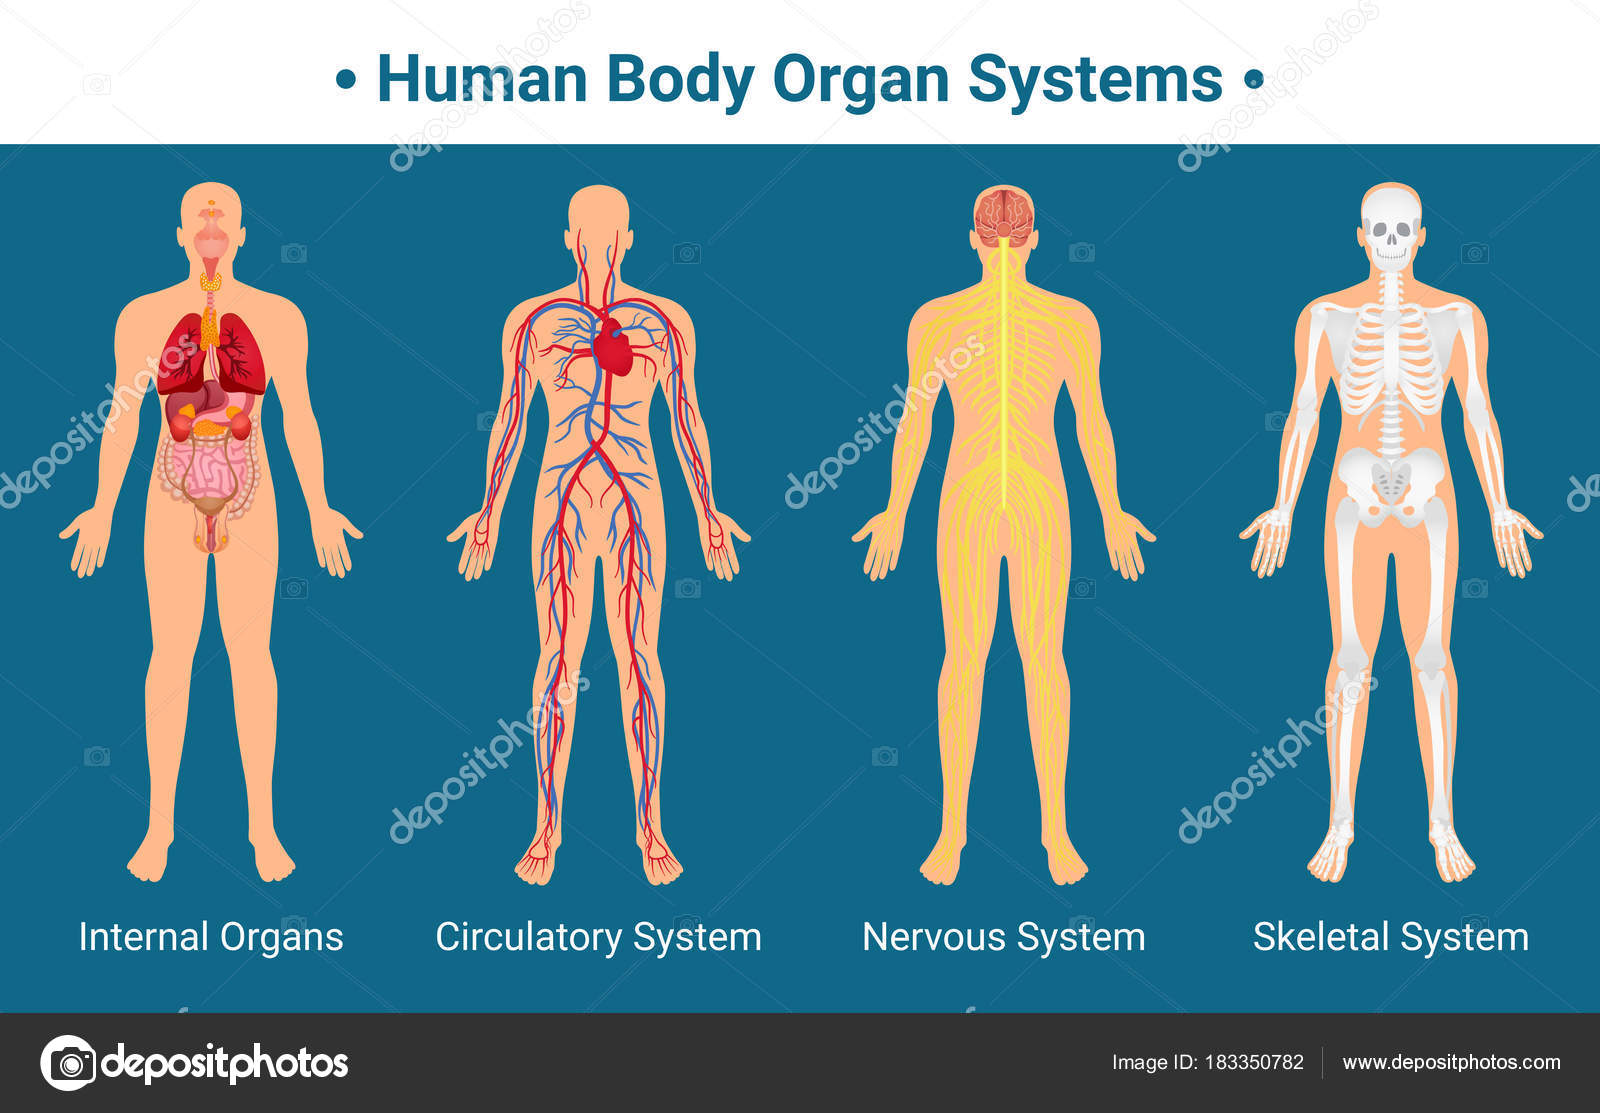 Human Body Organ Systems Poster Stock Vector C Macrovector 183350782